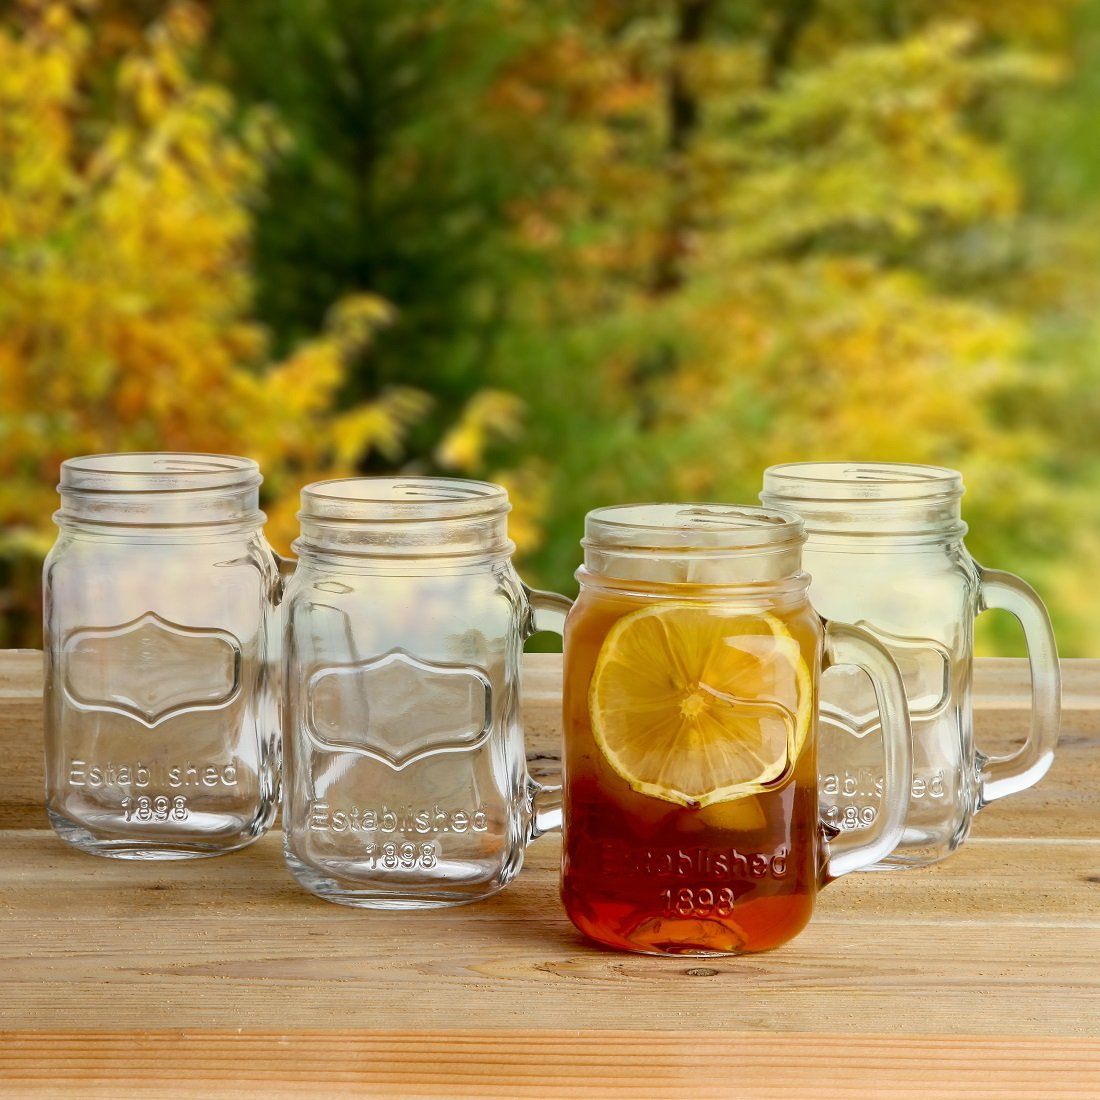 Lily's Home Old Fashioned Mason Jar Mugs with Handles, Vintage Inspired and Great as Old Fashion Drinking Glasses at BBQs and Parties, Clear (16 oz. Each, Set of 4) by Lily's Home